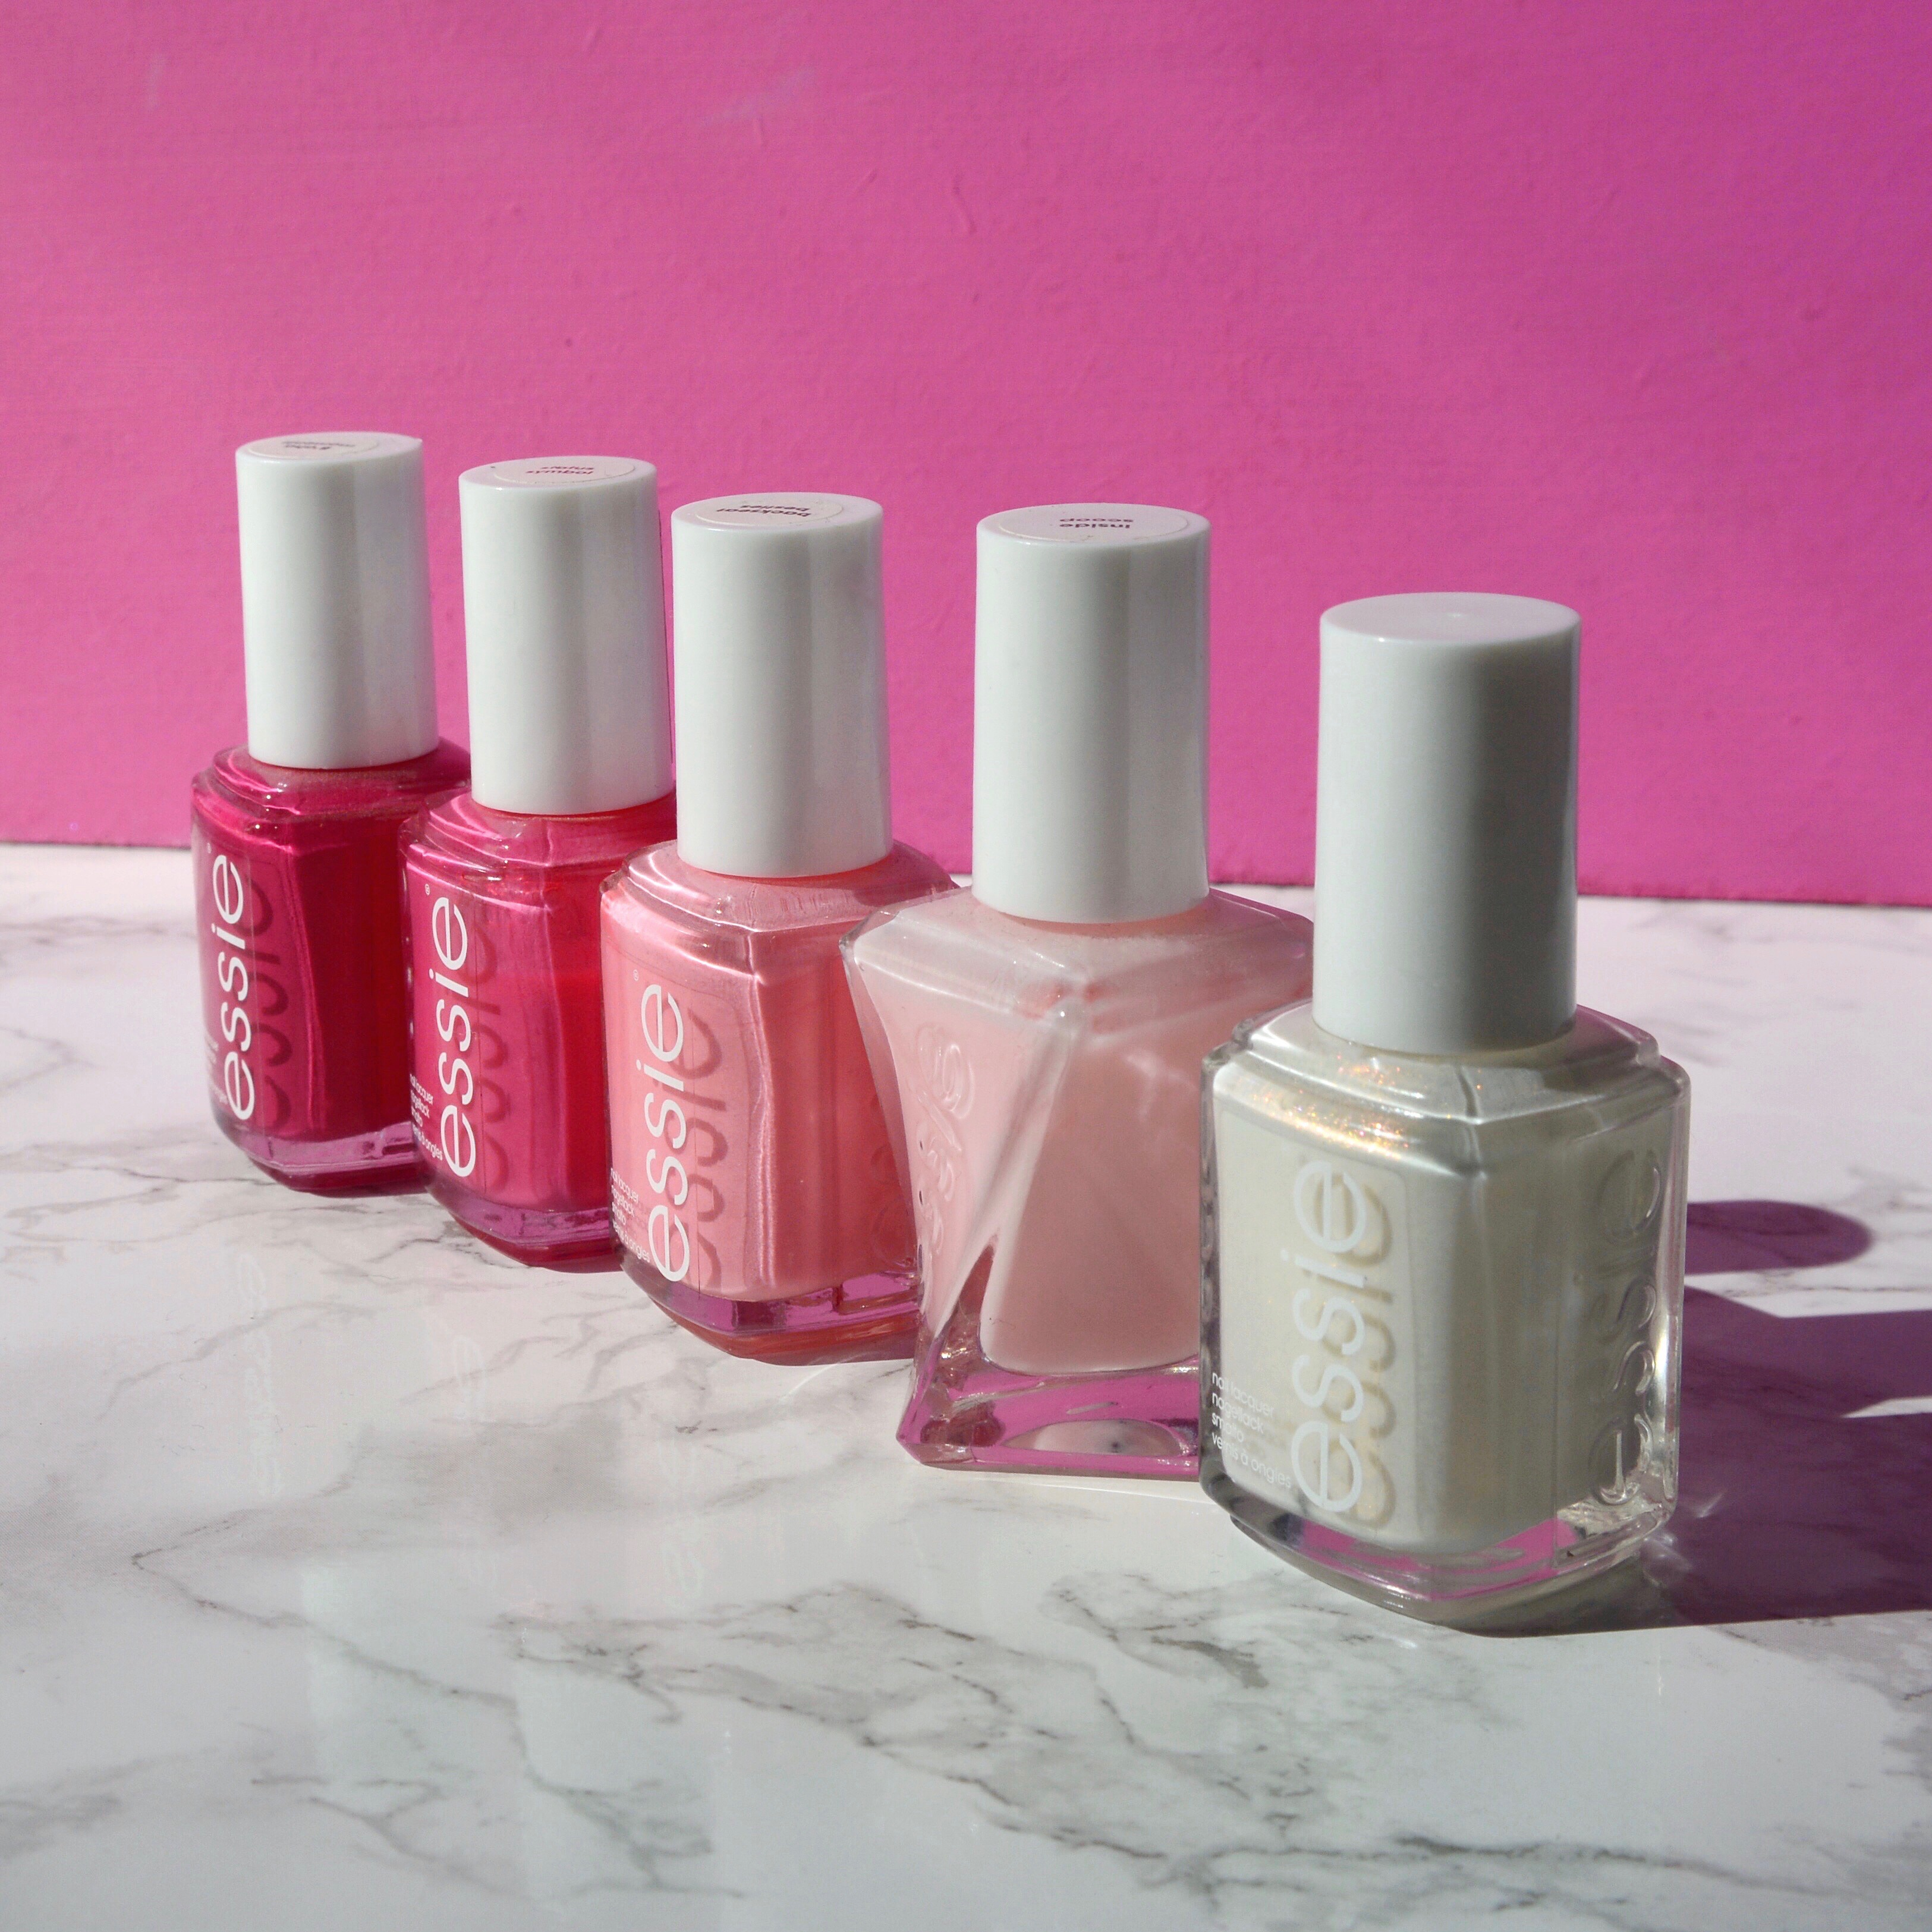 Pink essie polishes - Talonted Lex